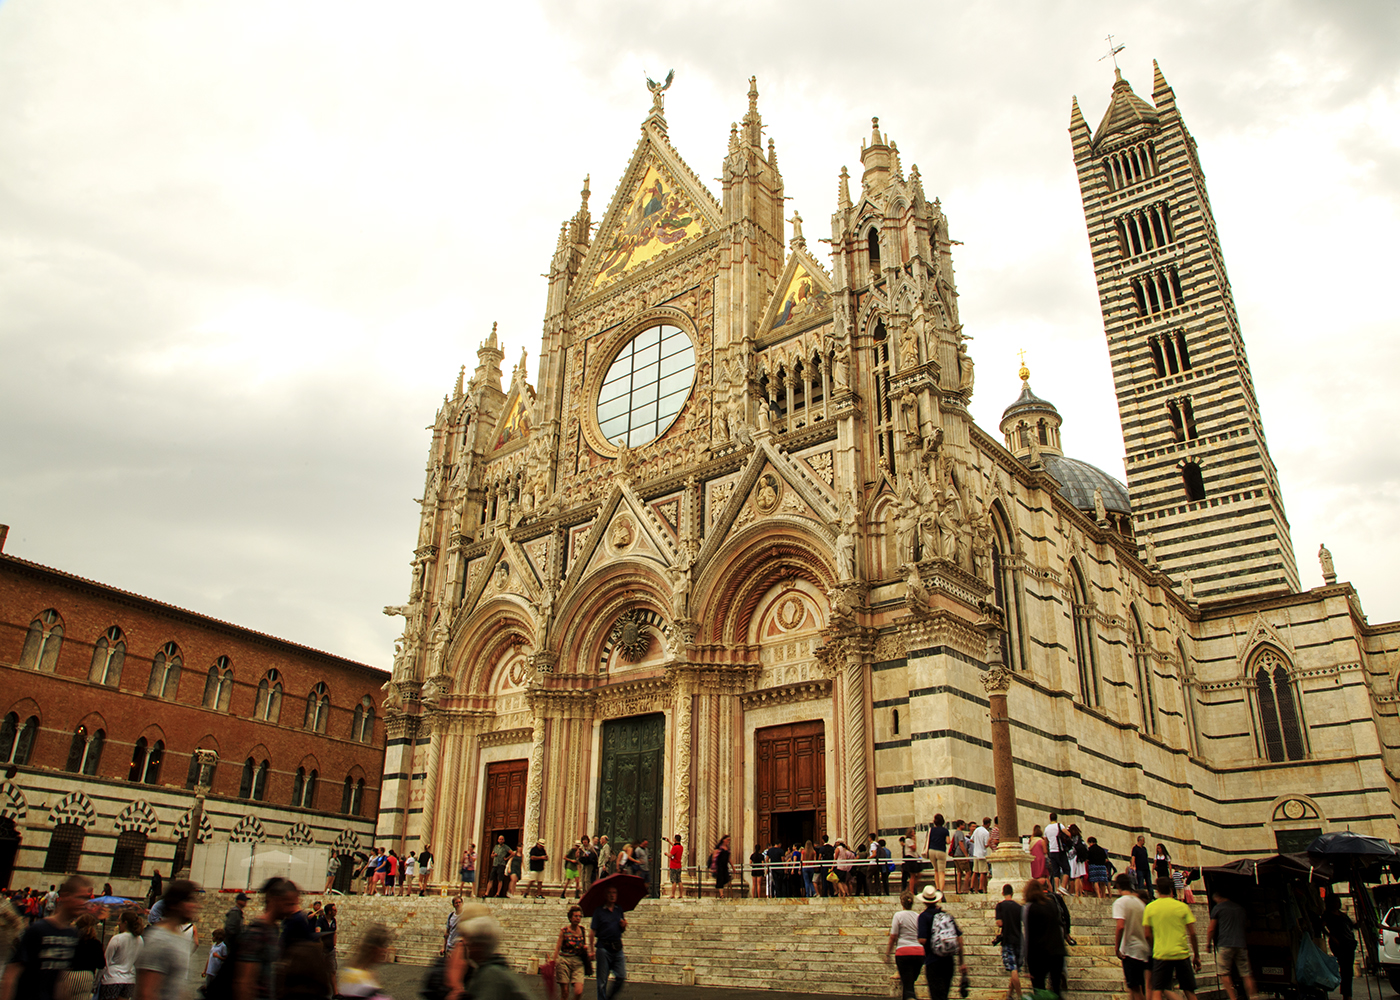 Suffusing My Senses In Siena - Image 9